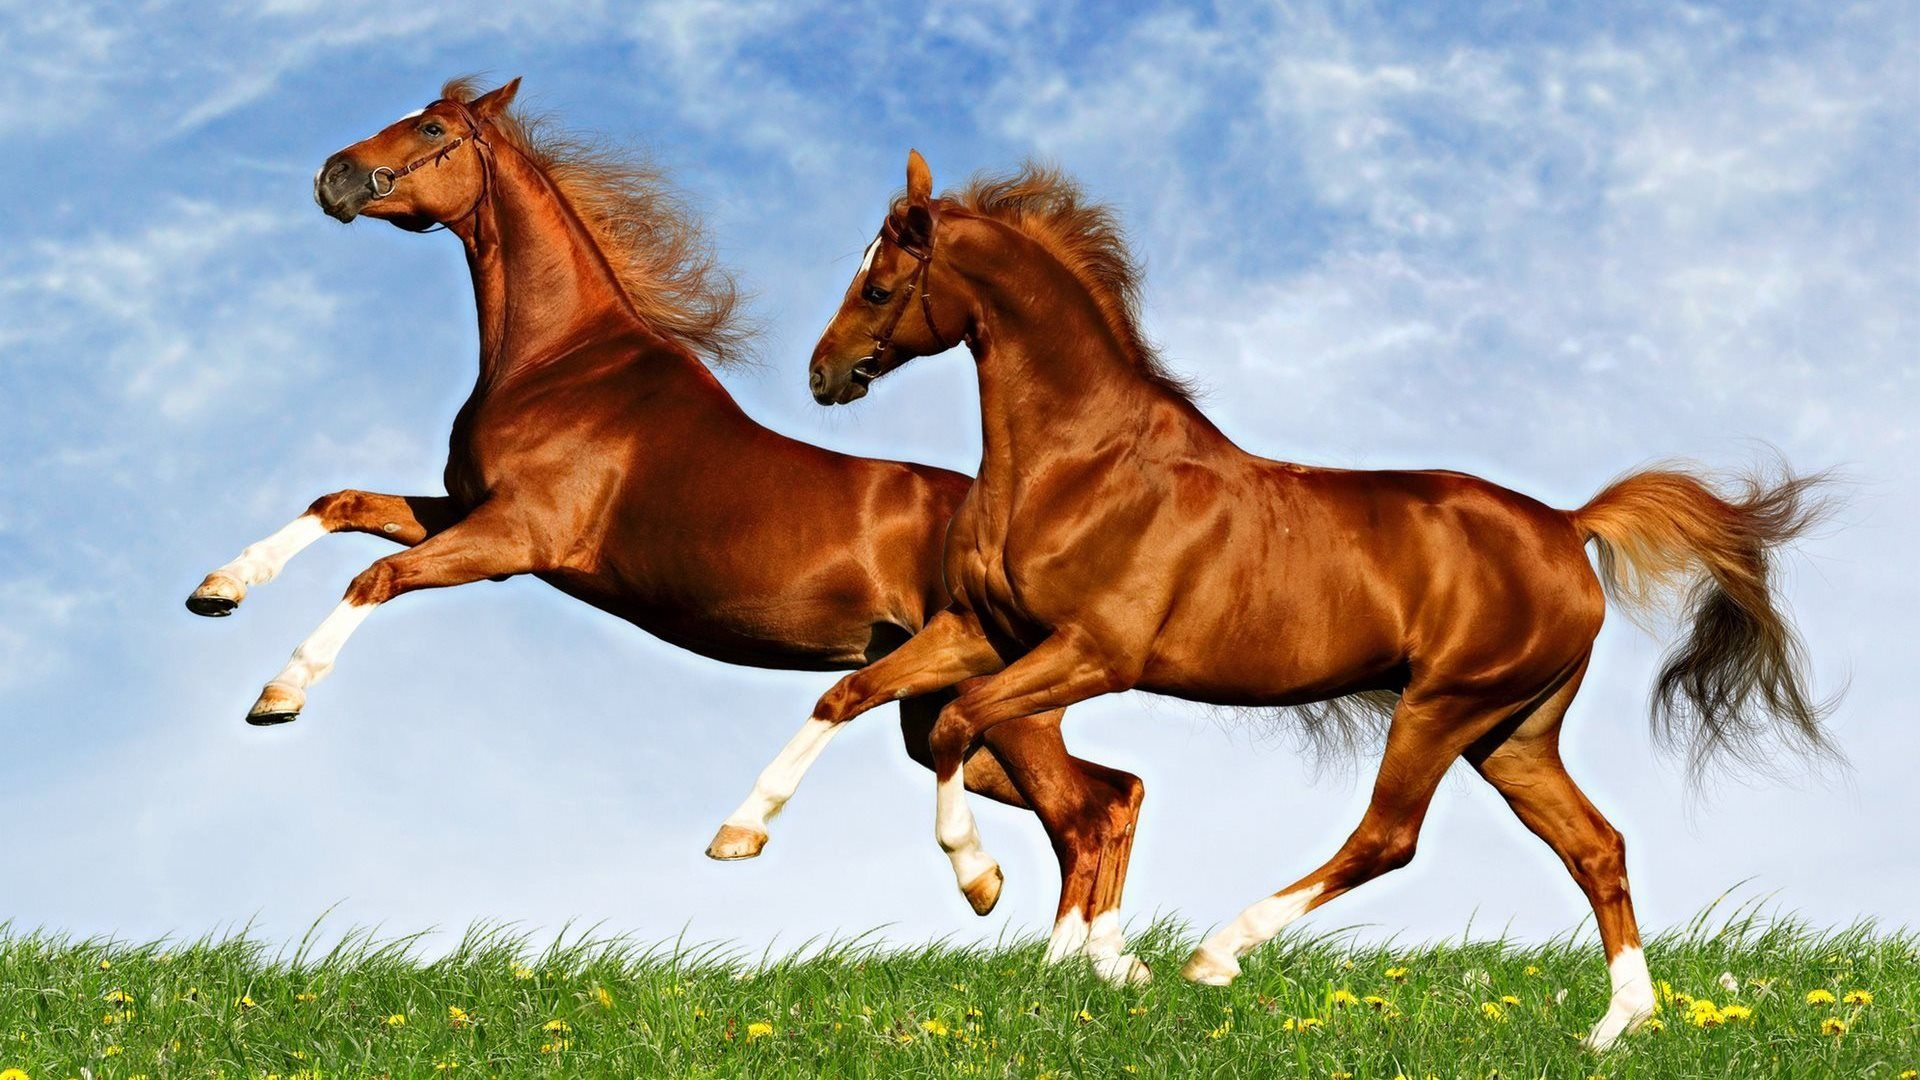 Download Wallpaper Horse Spring - 2dff071a8c2e004b46687f561f02ccca  Perfect Image Reference_356698.jpg